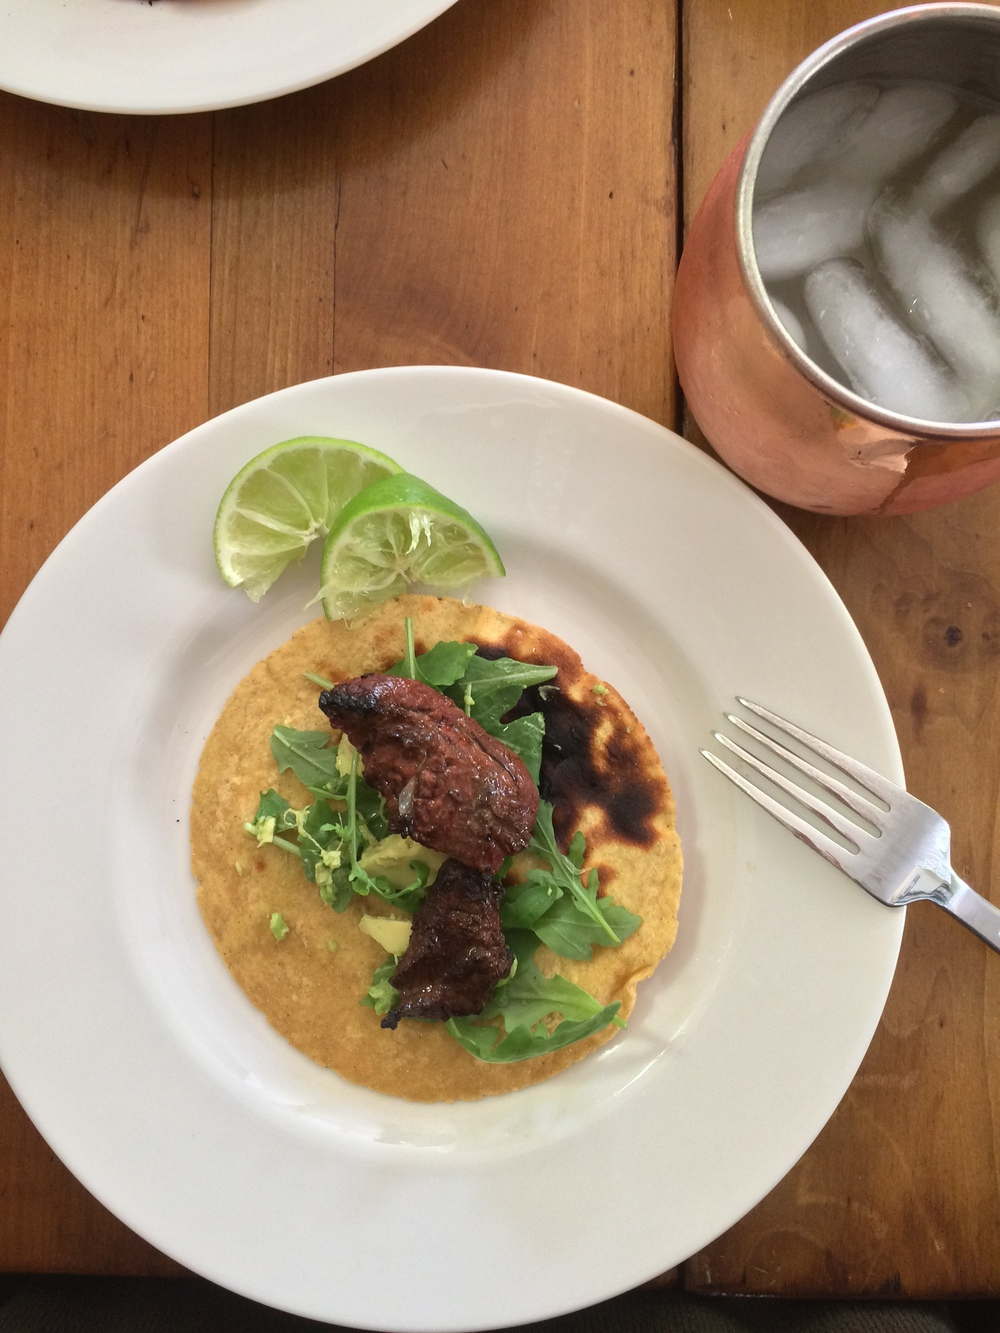 I like my steak tacos with arugula, avocado and a little bit of fresh lime juice - so delicious!